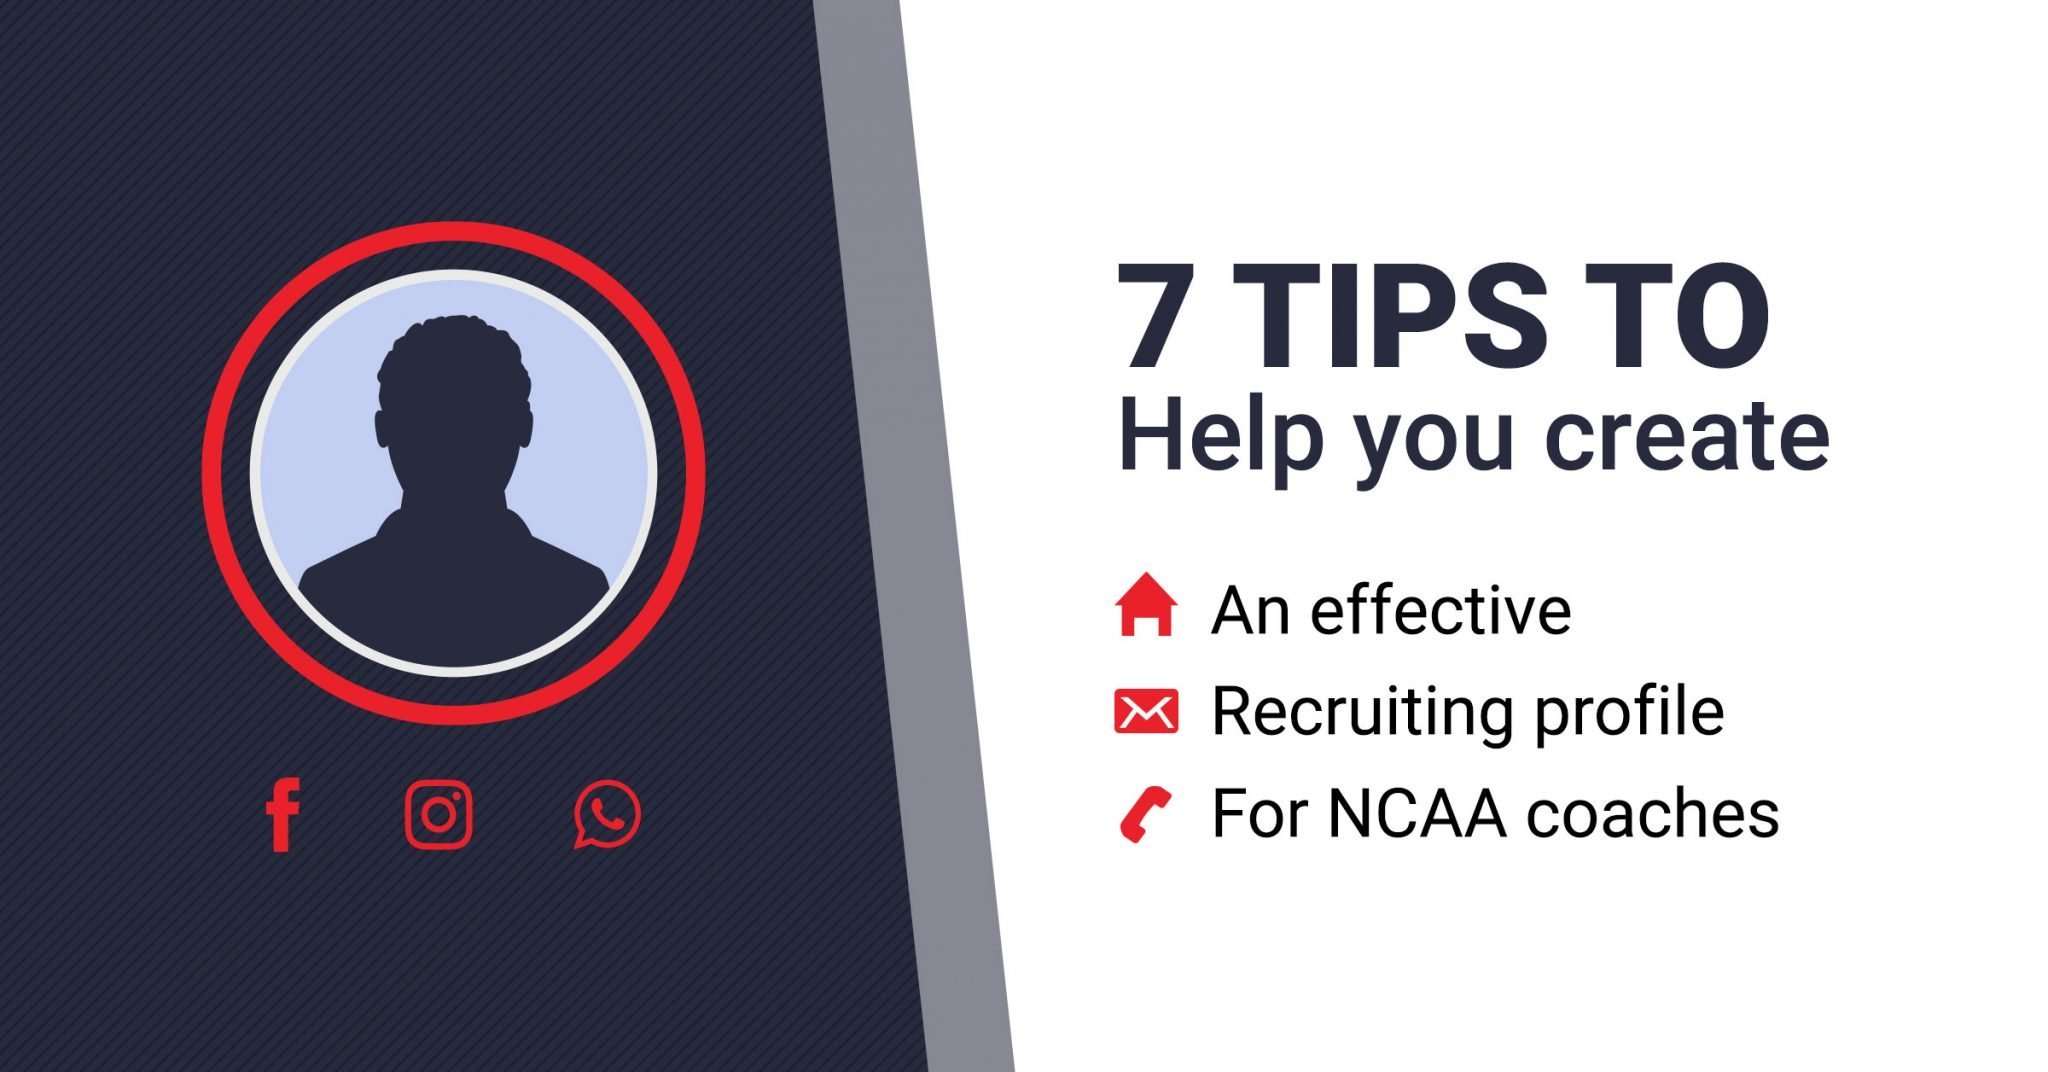 7 Tips To Help You Create An Effective Recruiting Profile